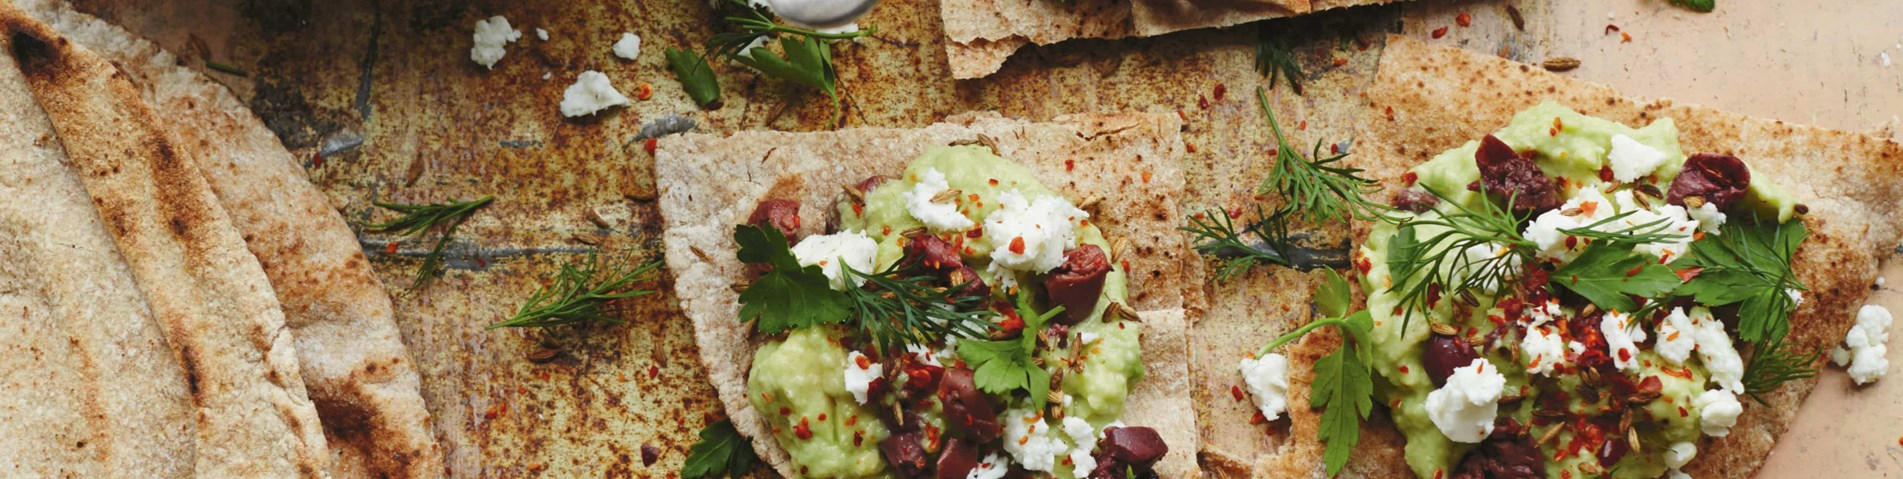 Anna-Jones---Avocado,-tahini-and-olive-smash-flatbreads2.jpg